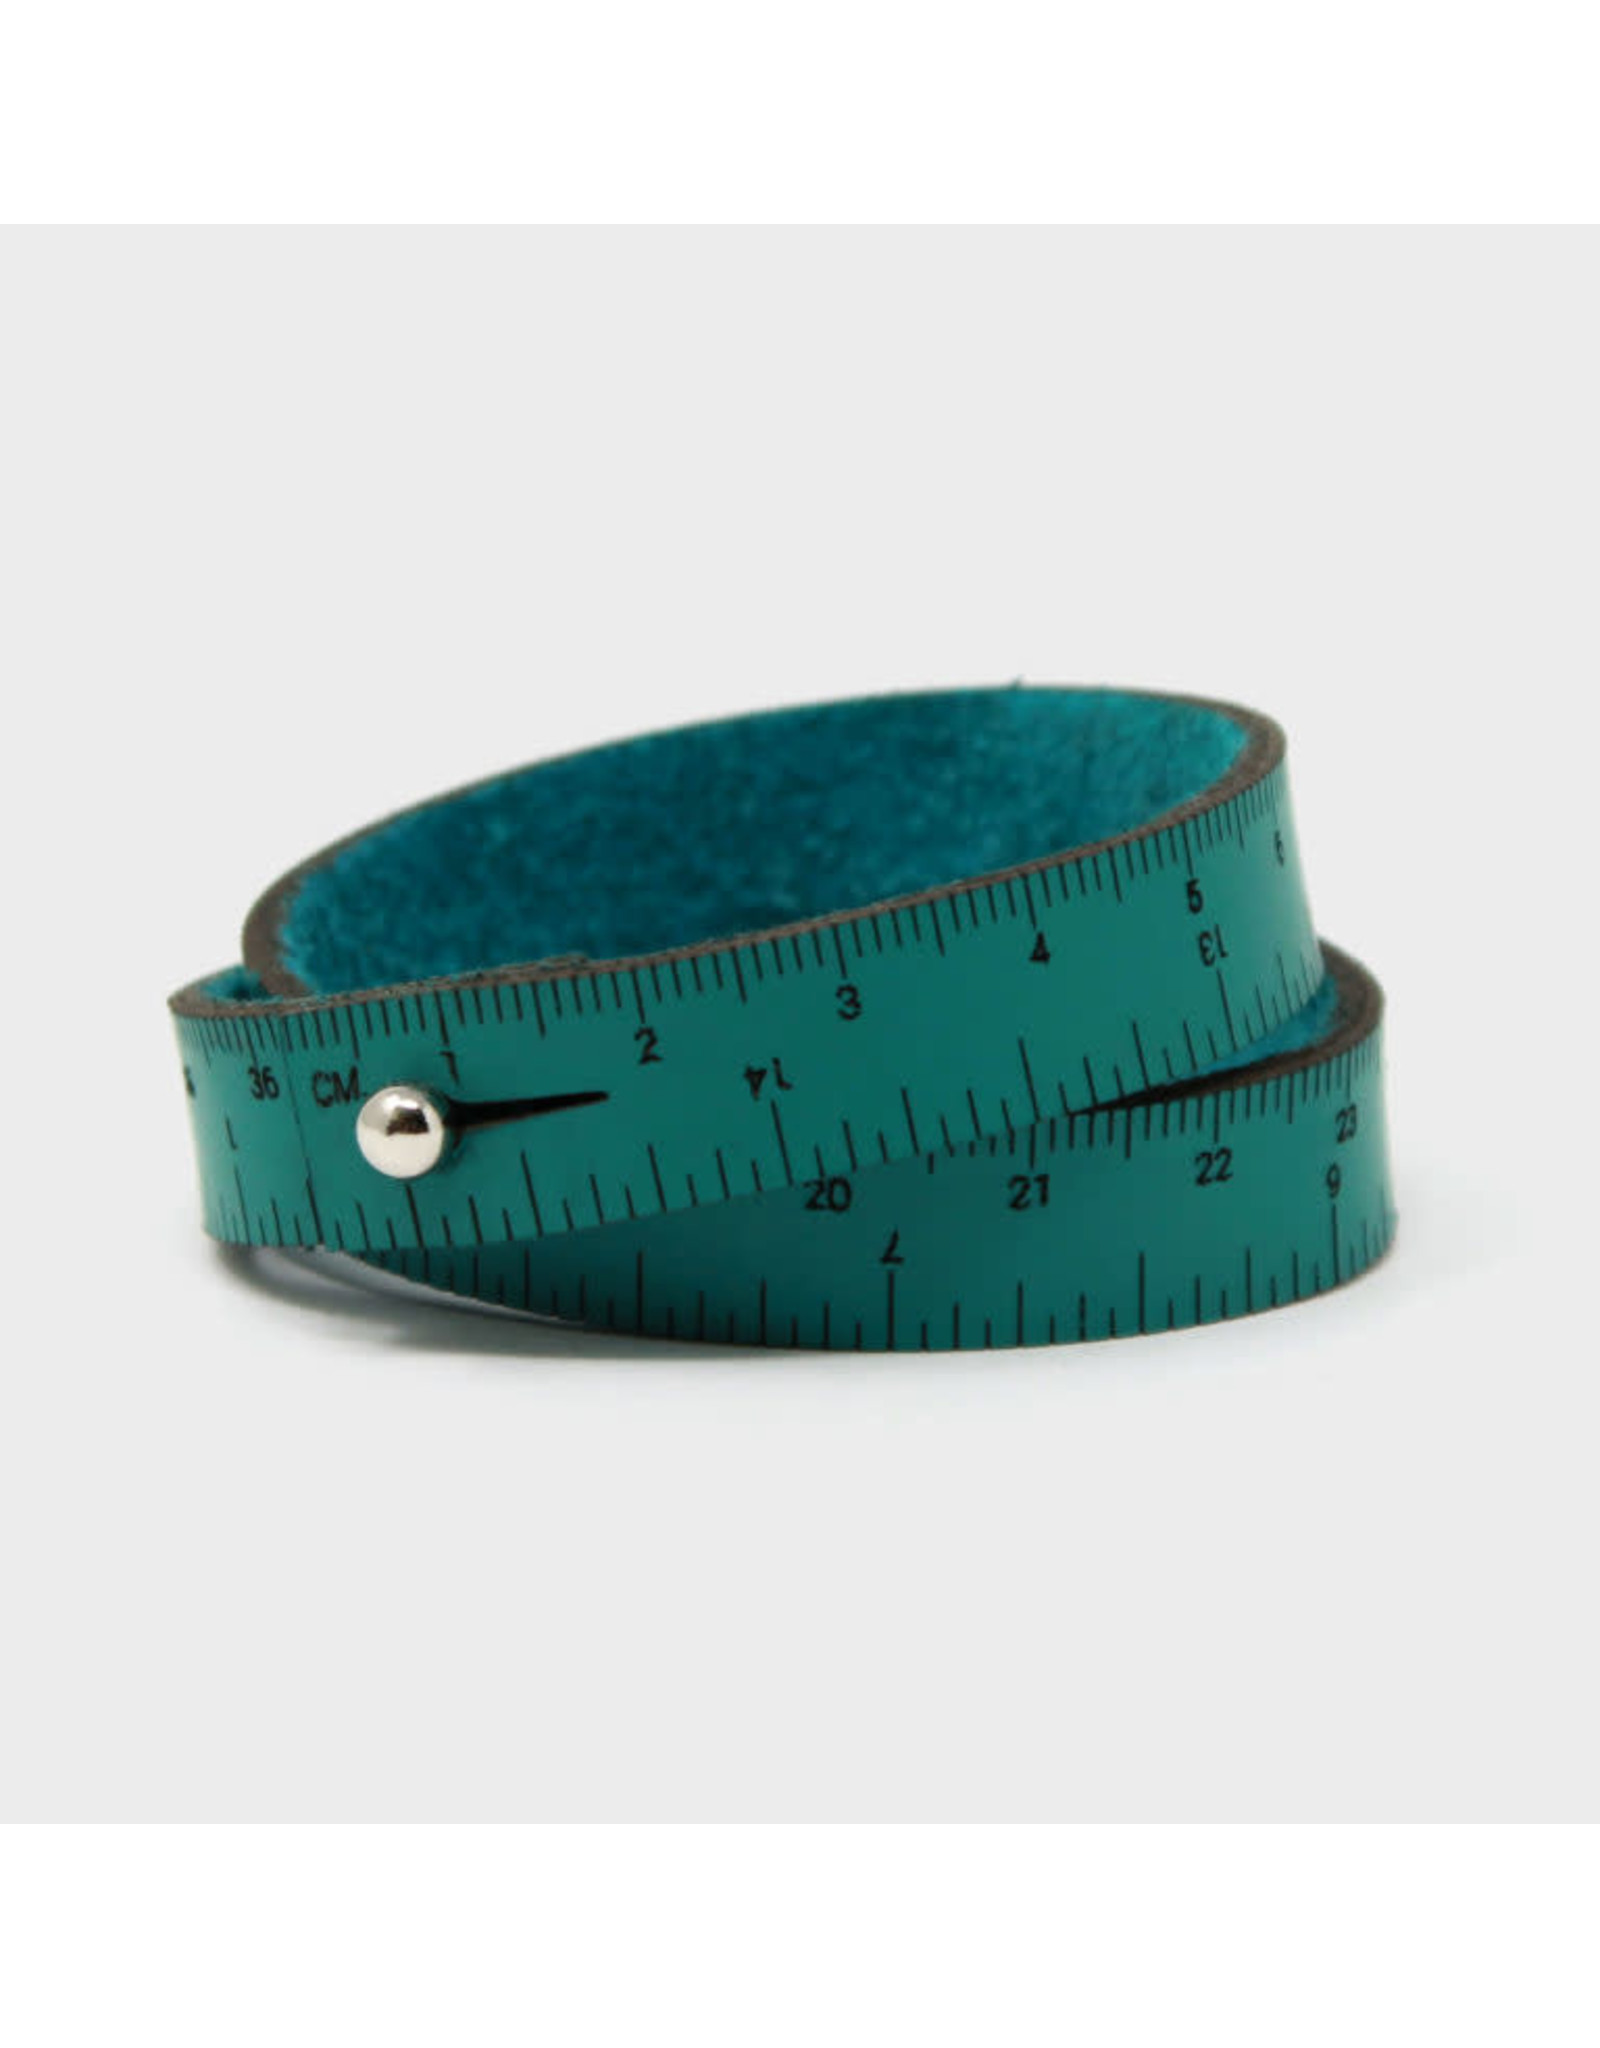 Wrist Ruler - TEAL - 17 inches